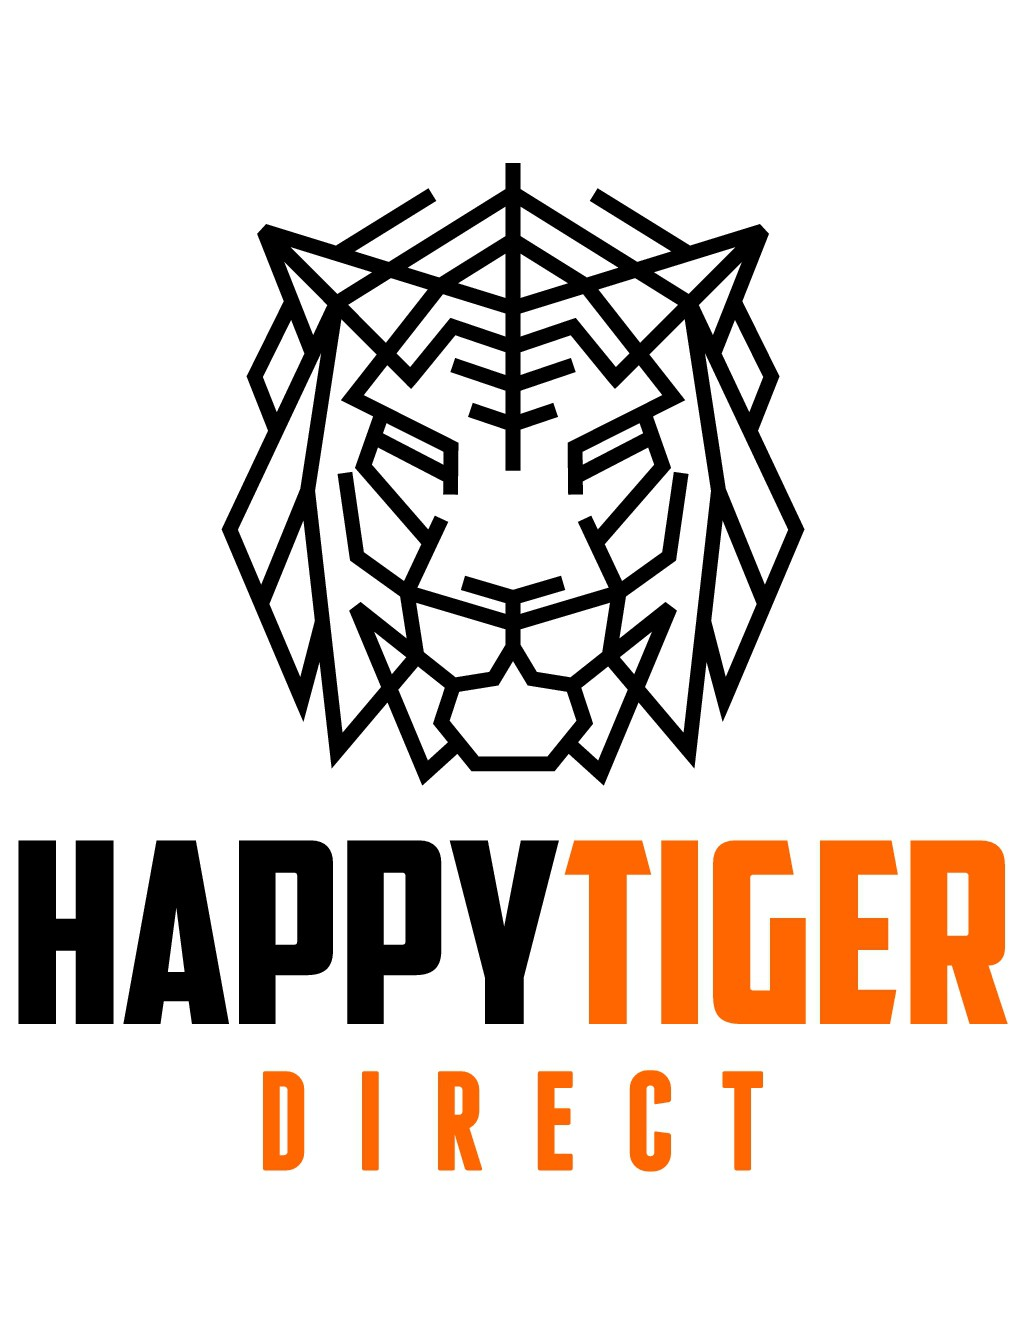 Design a colorful, powerful tiger logo for my business